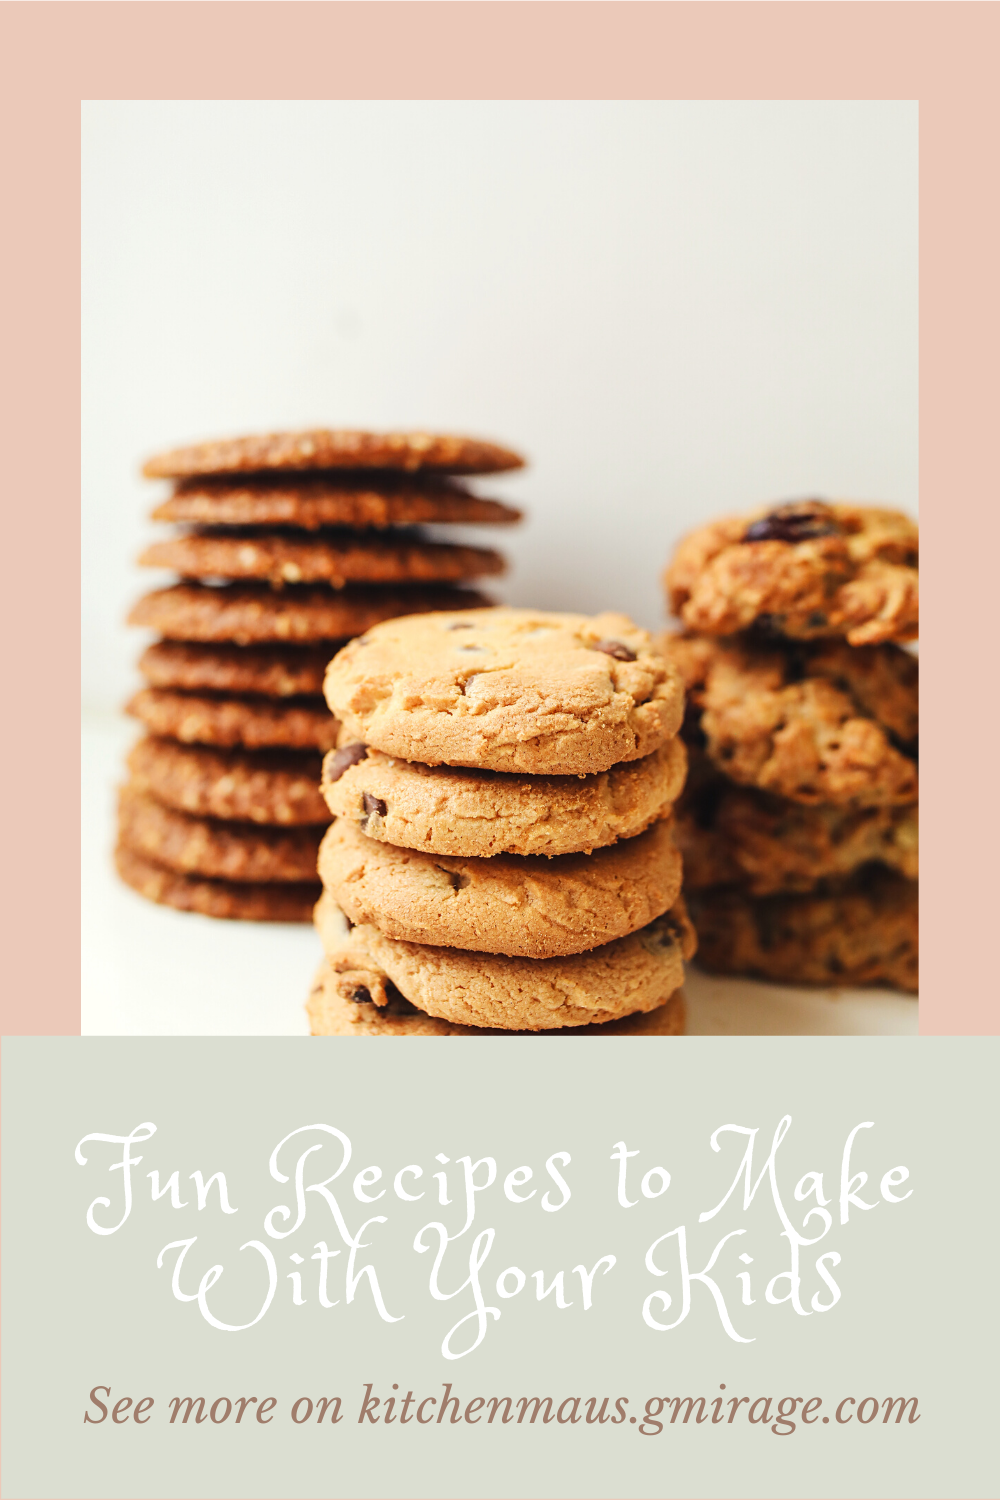 4 Fun Recipes to Make With Your Kids